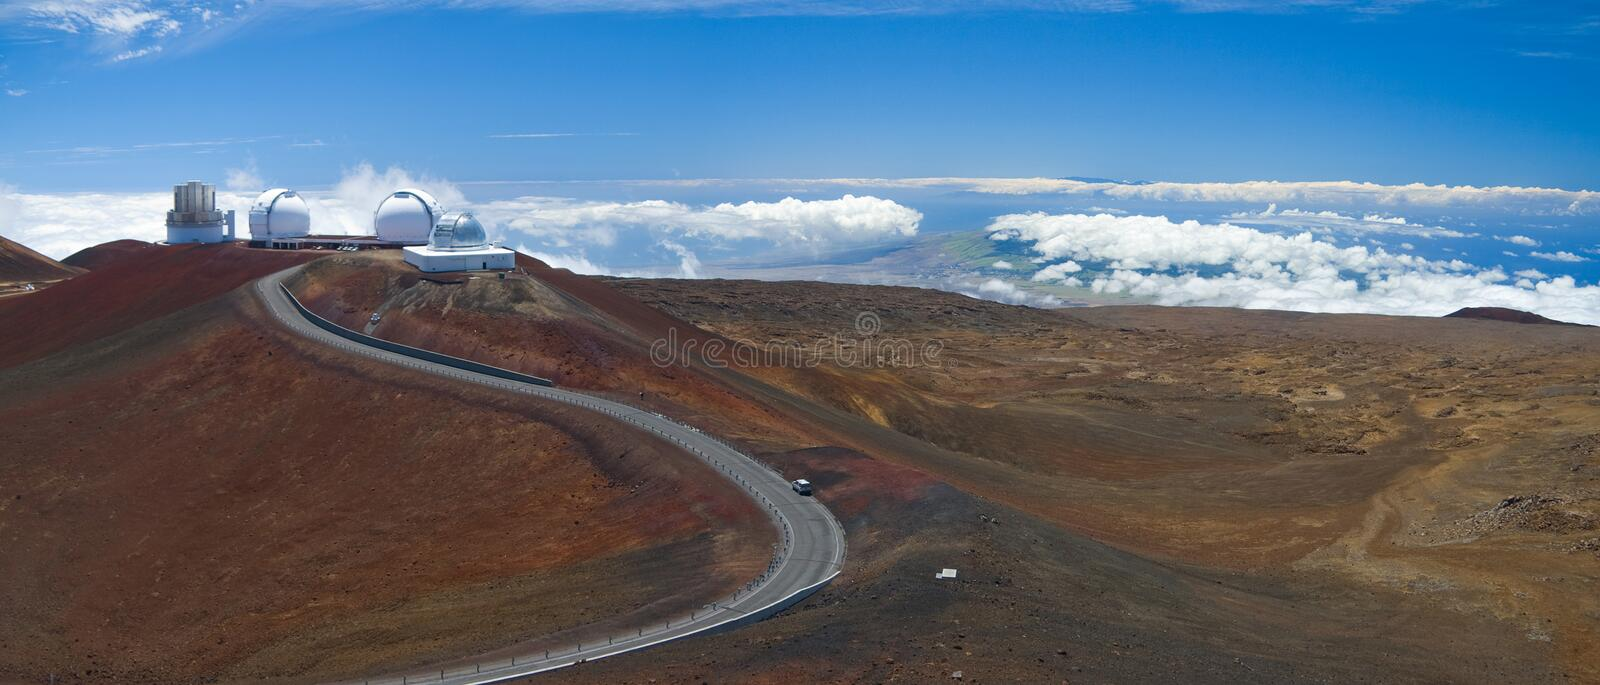 Mauna Kea Observatories royalty free stock photography